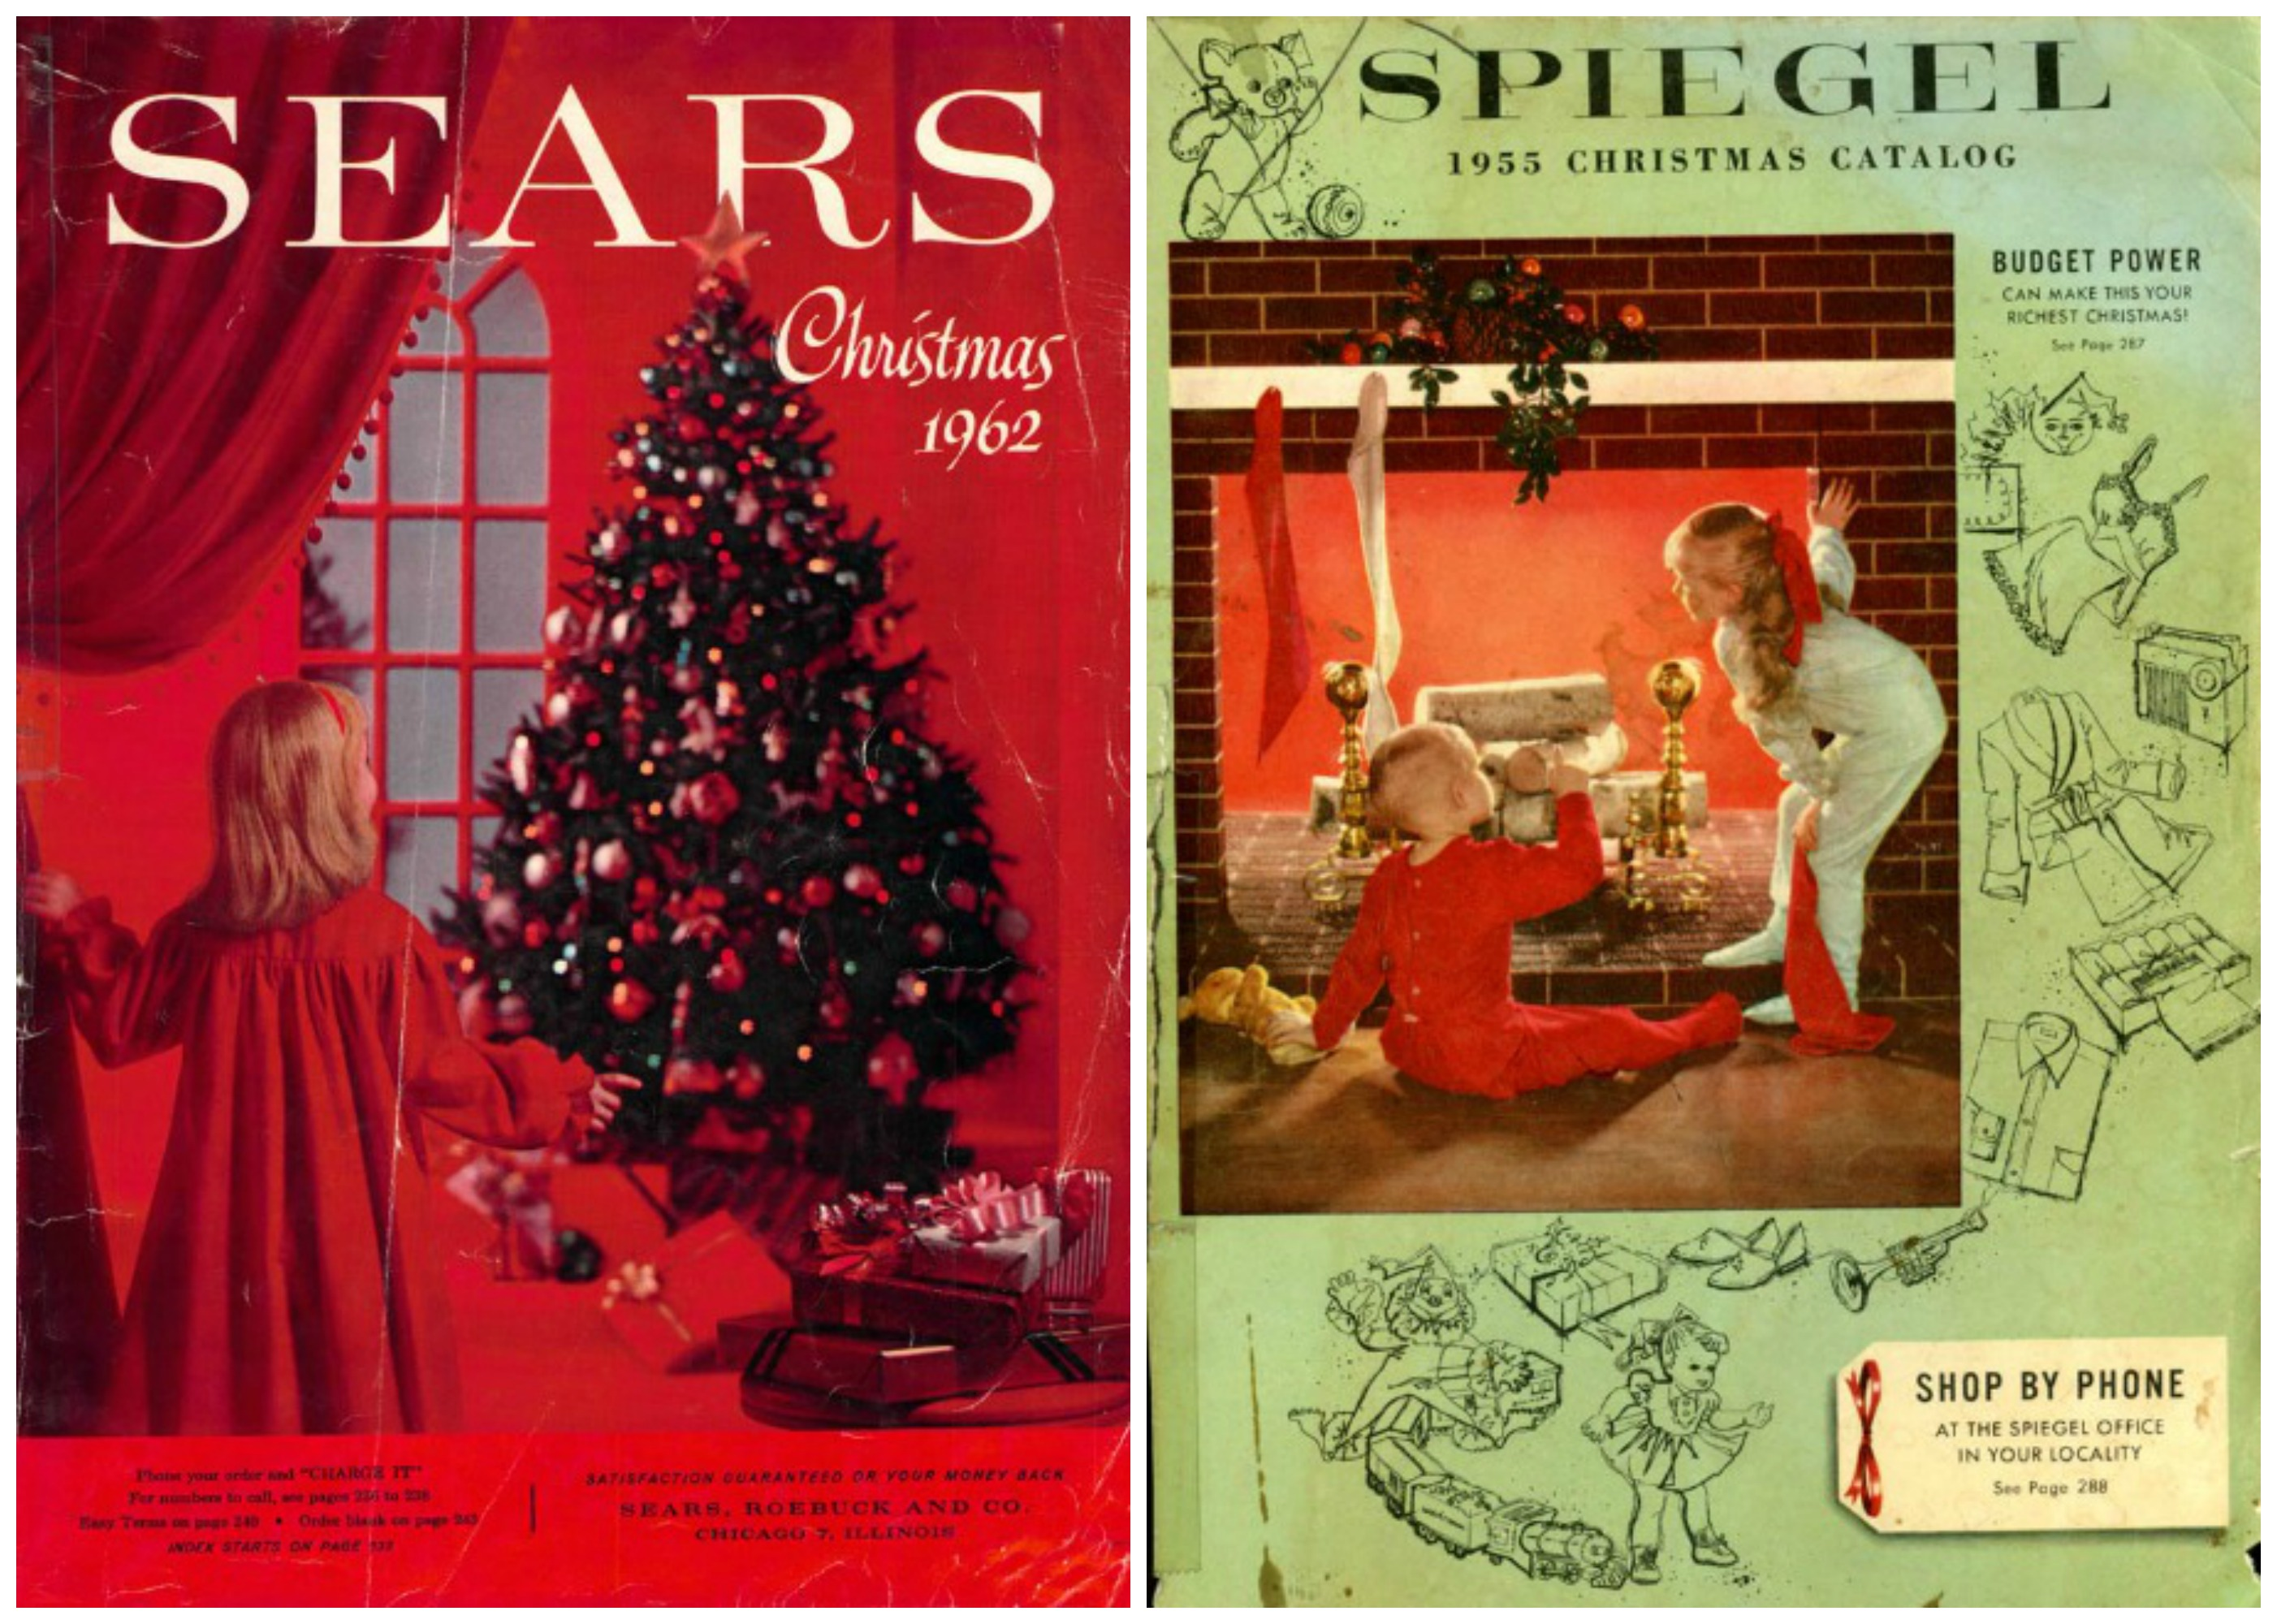 xmas catalogs sears 1962 spiegel 1955 - Sears Christmas Catalog